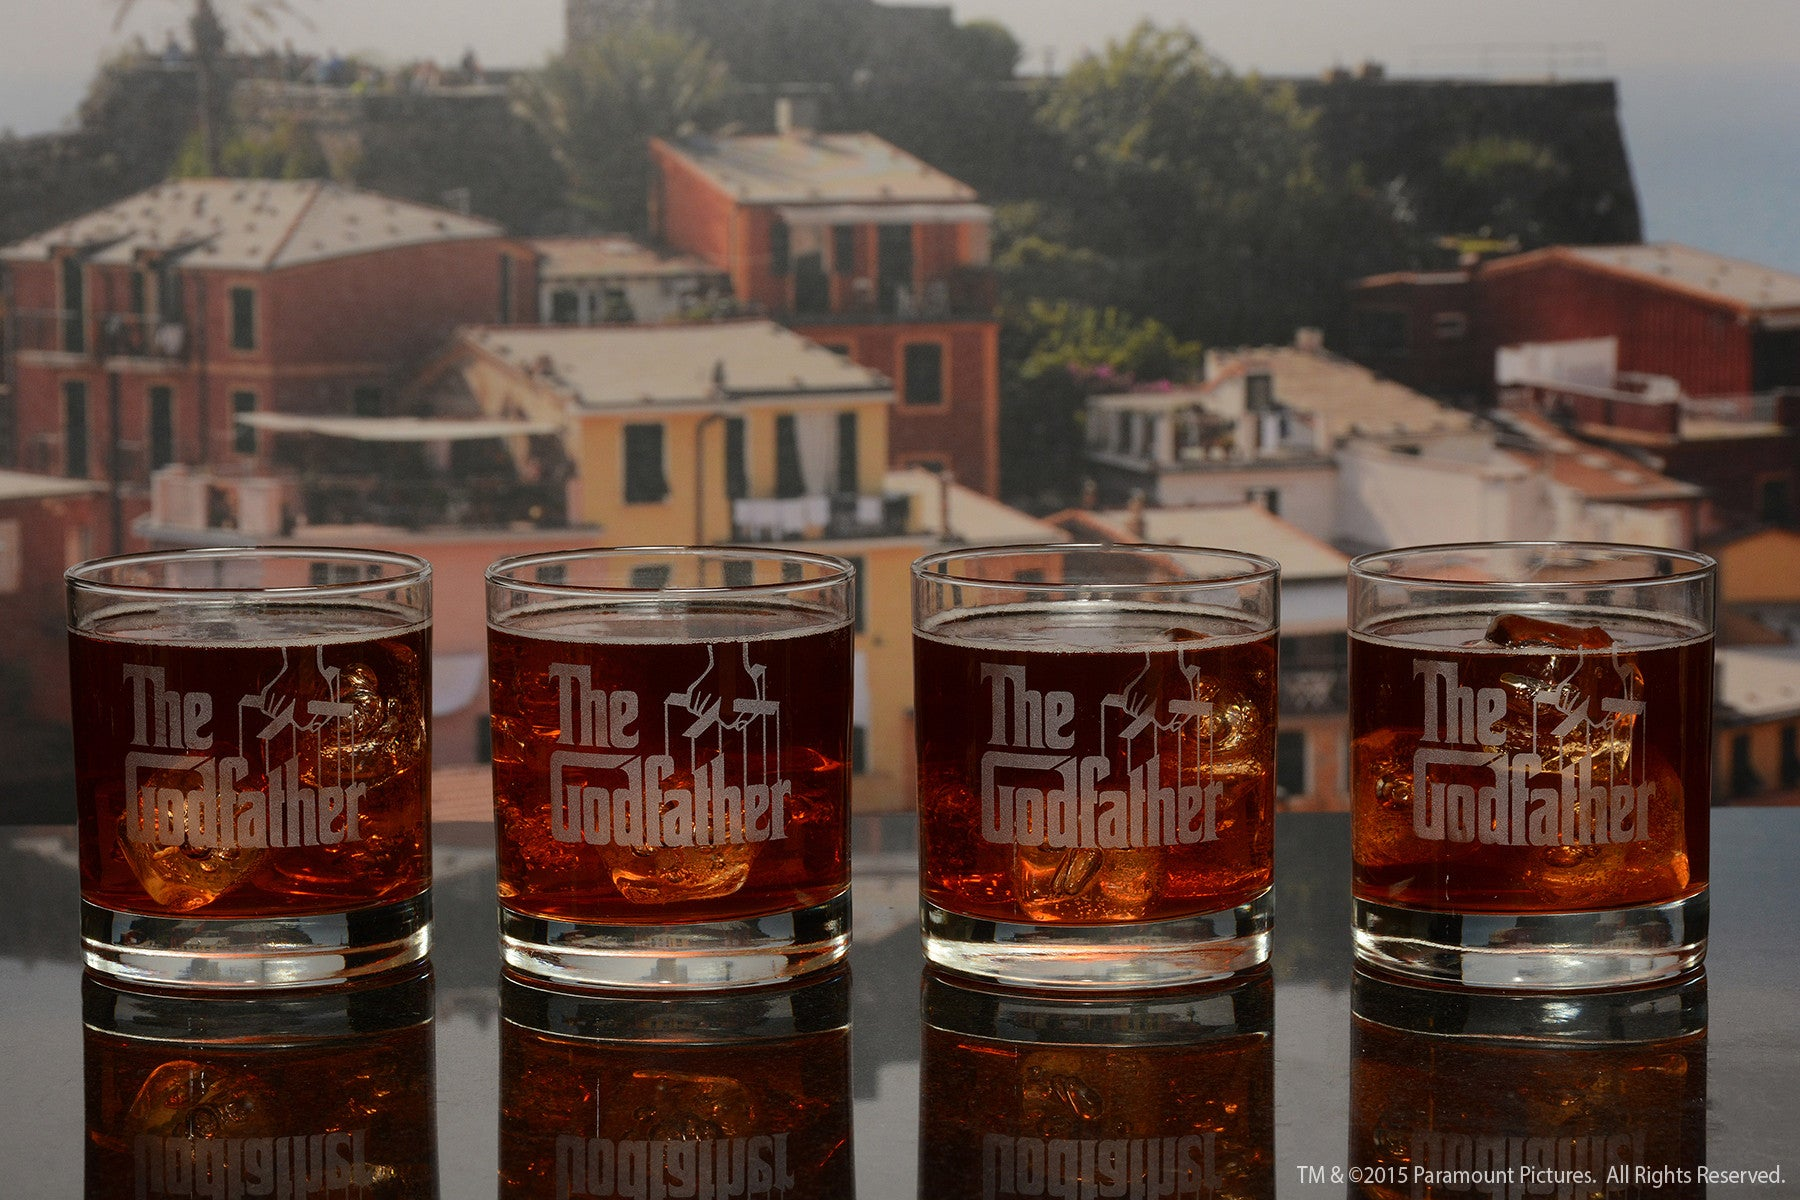 The Godfather Movie Whiskey Glasses with Quotes 4pc Set